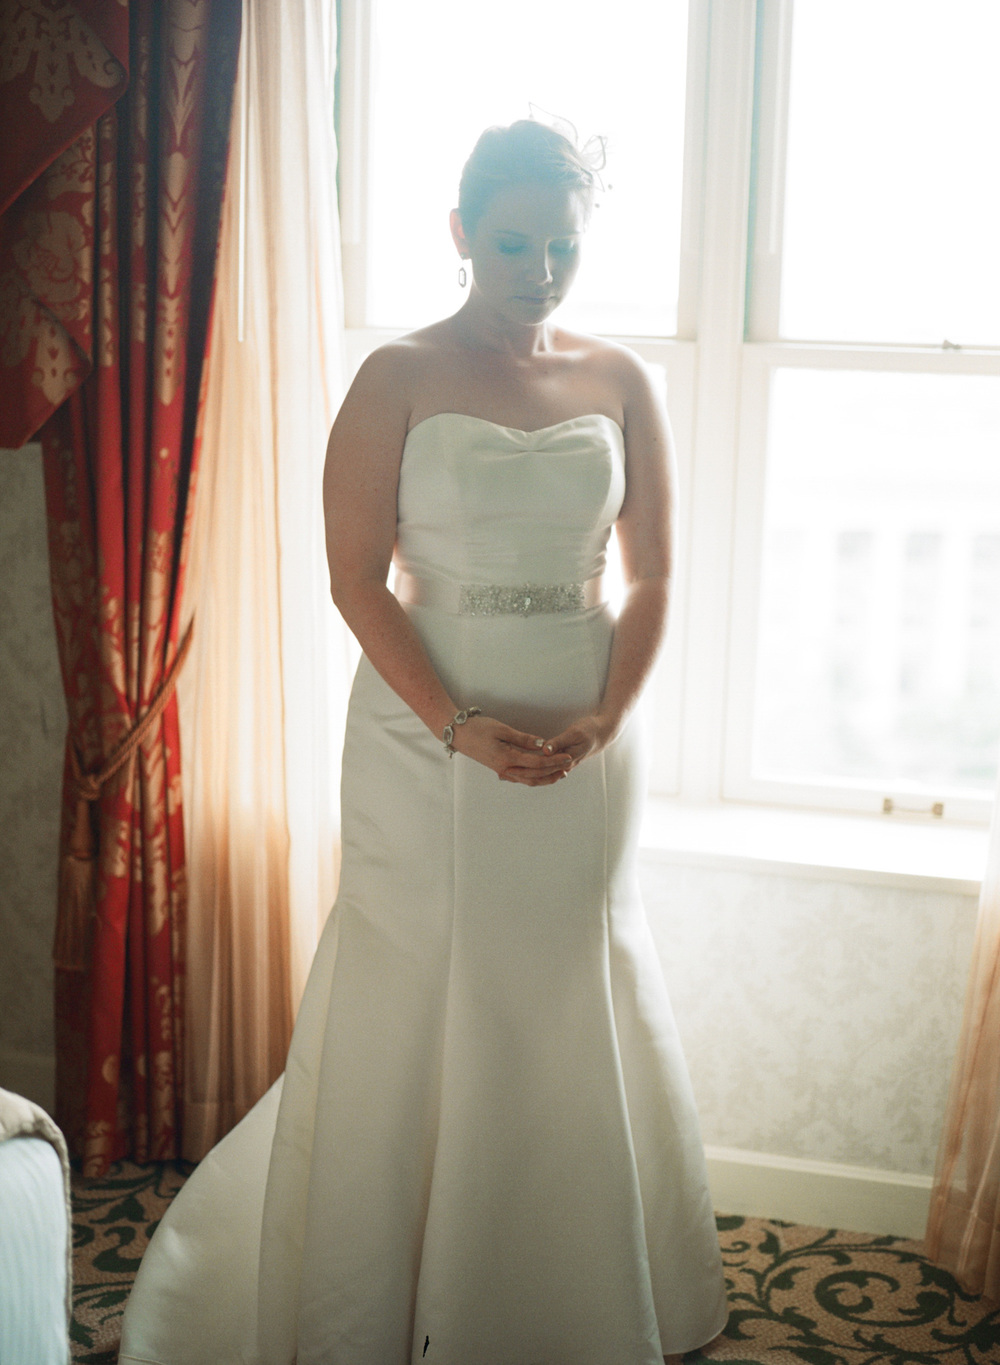 284-bride-getting-ready-at-williard-hotel.jpg